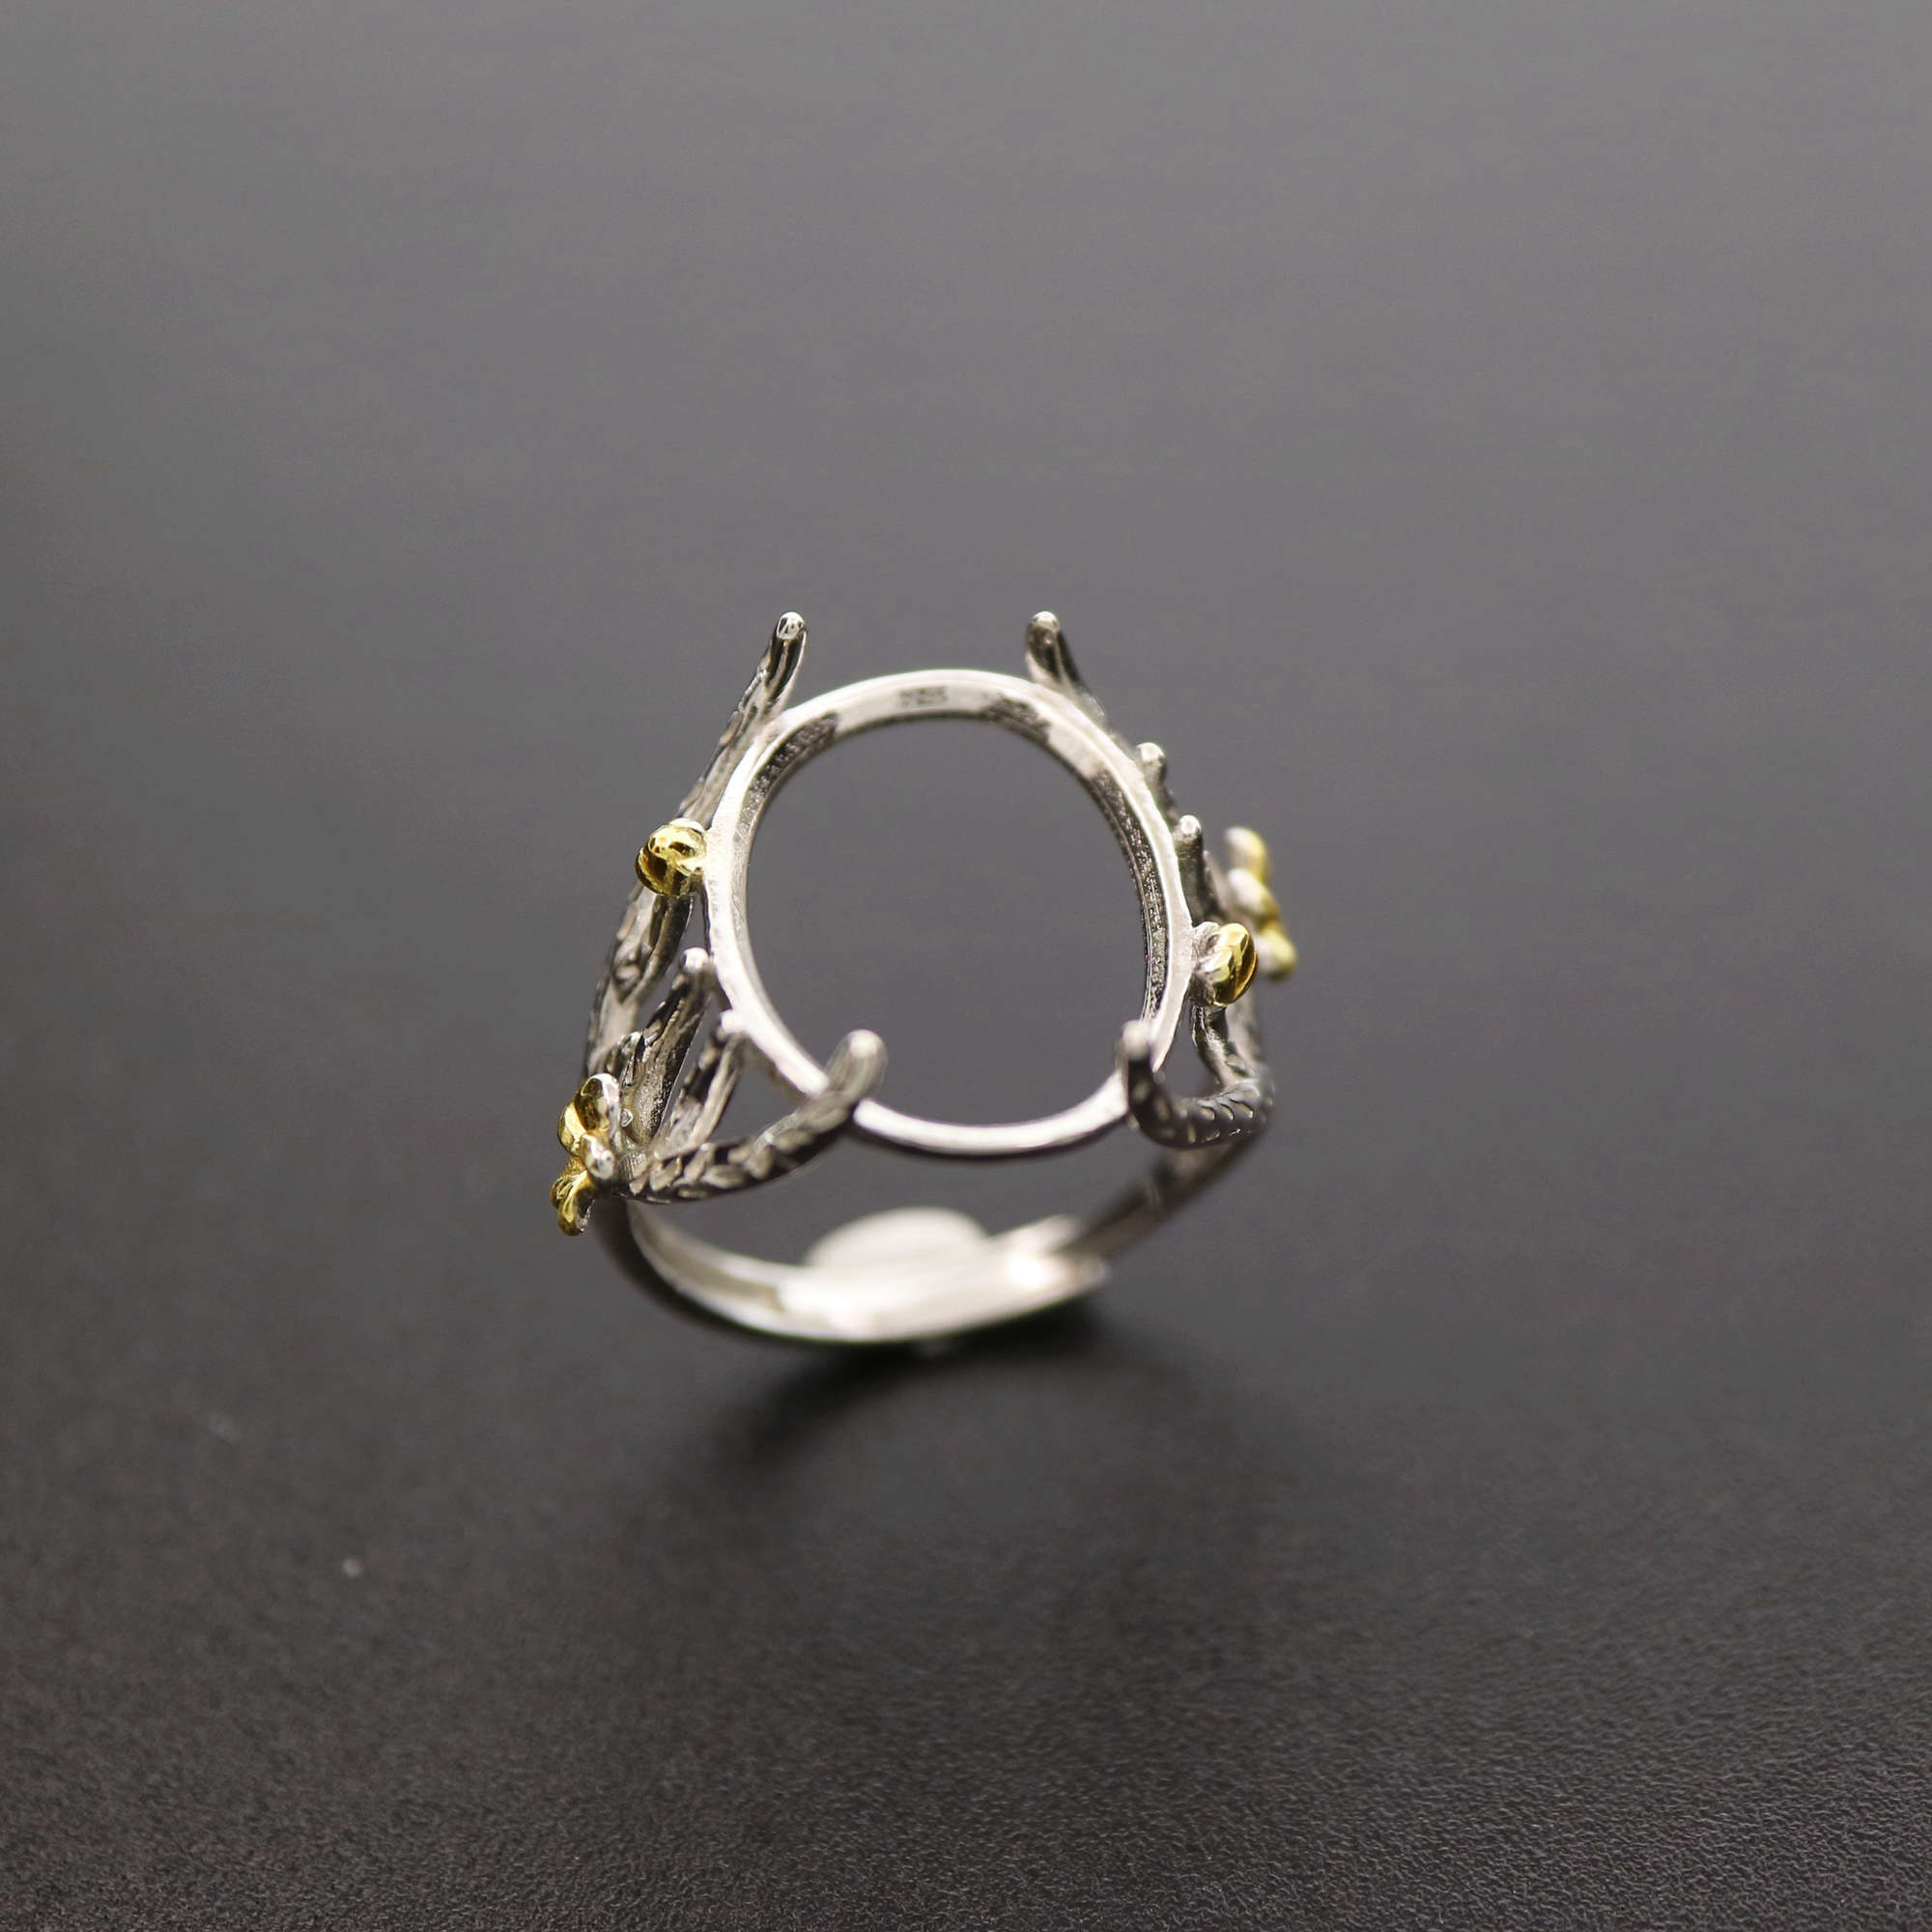 13x18MM Gold Flower 925 Sterling Silver Tree Branch Oval Cabochon Bezel Adjustable Ring Settings DIY Jewelry Supplies 1223087